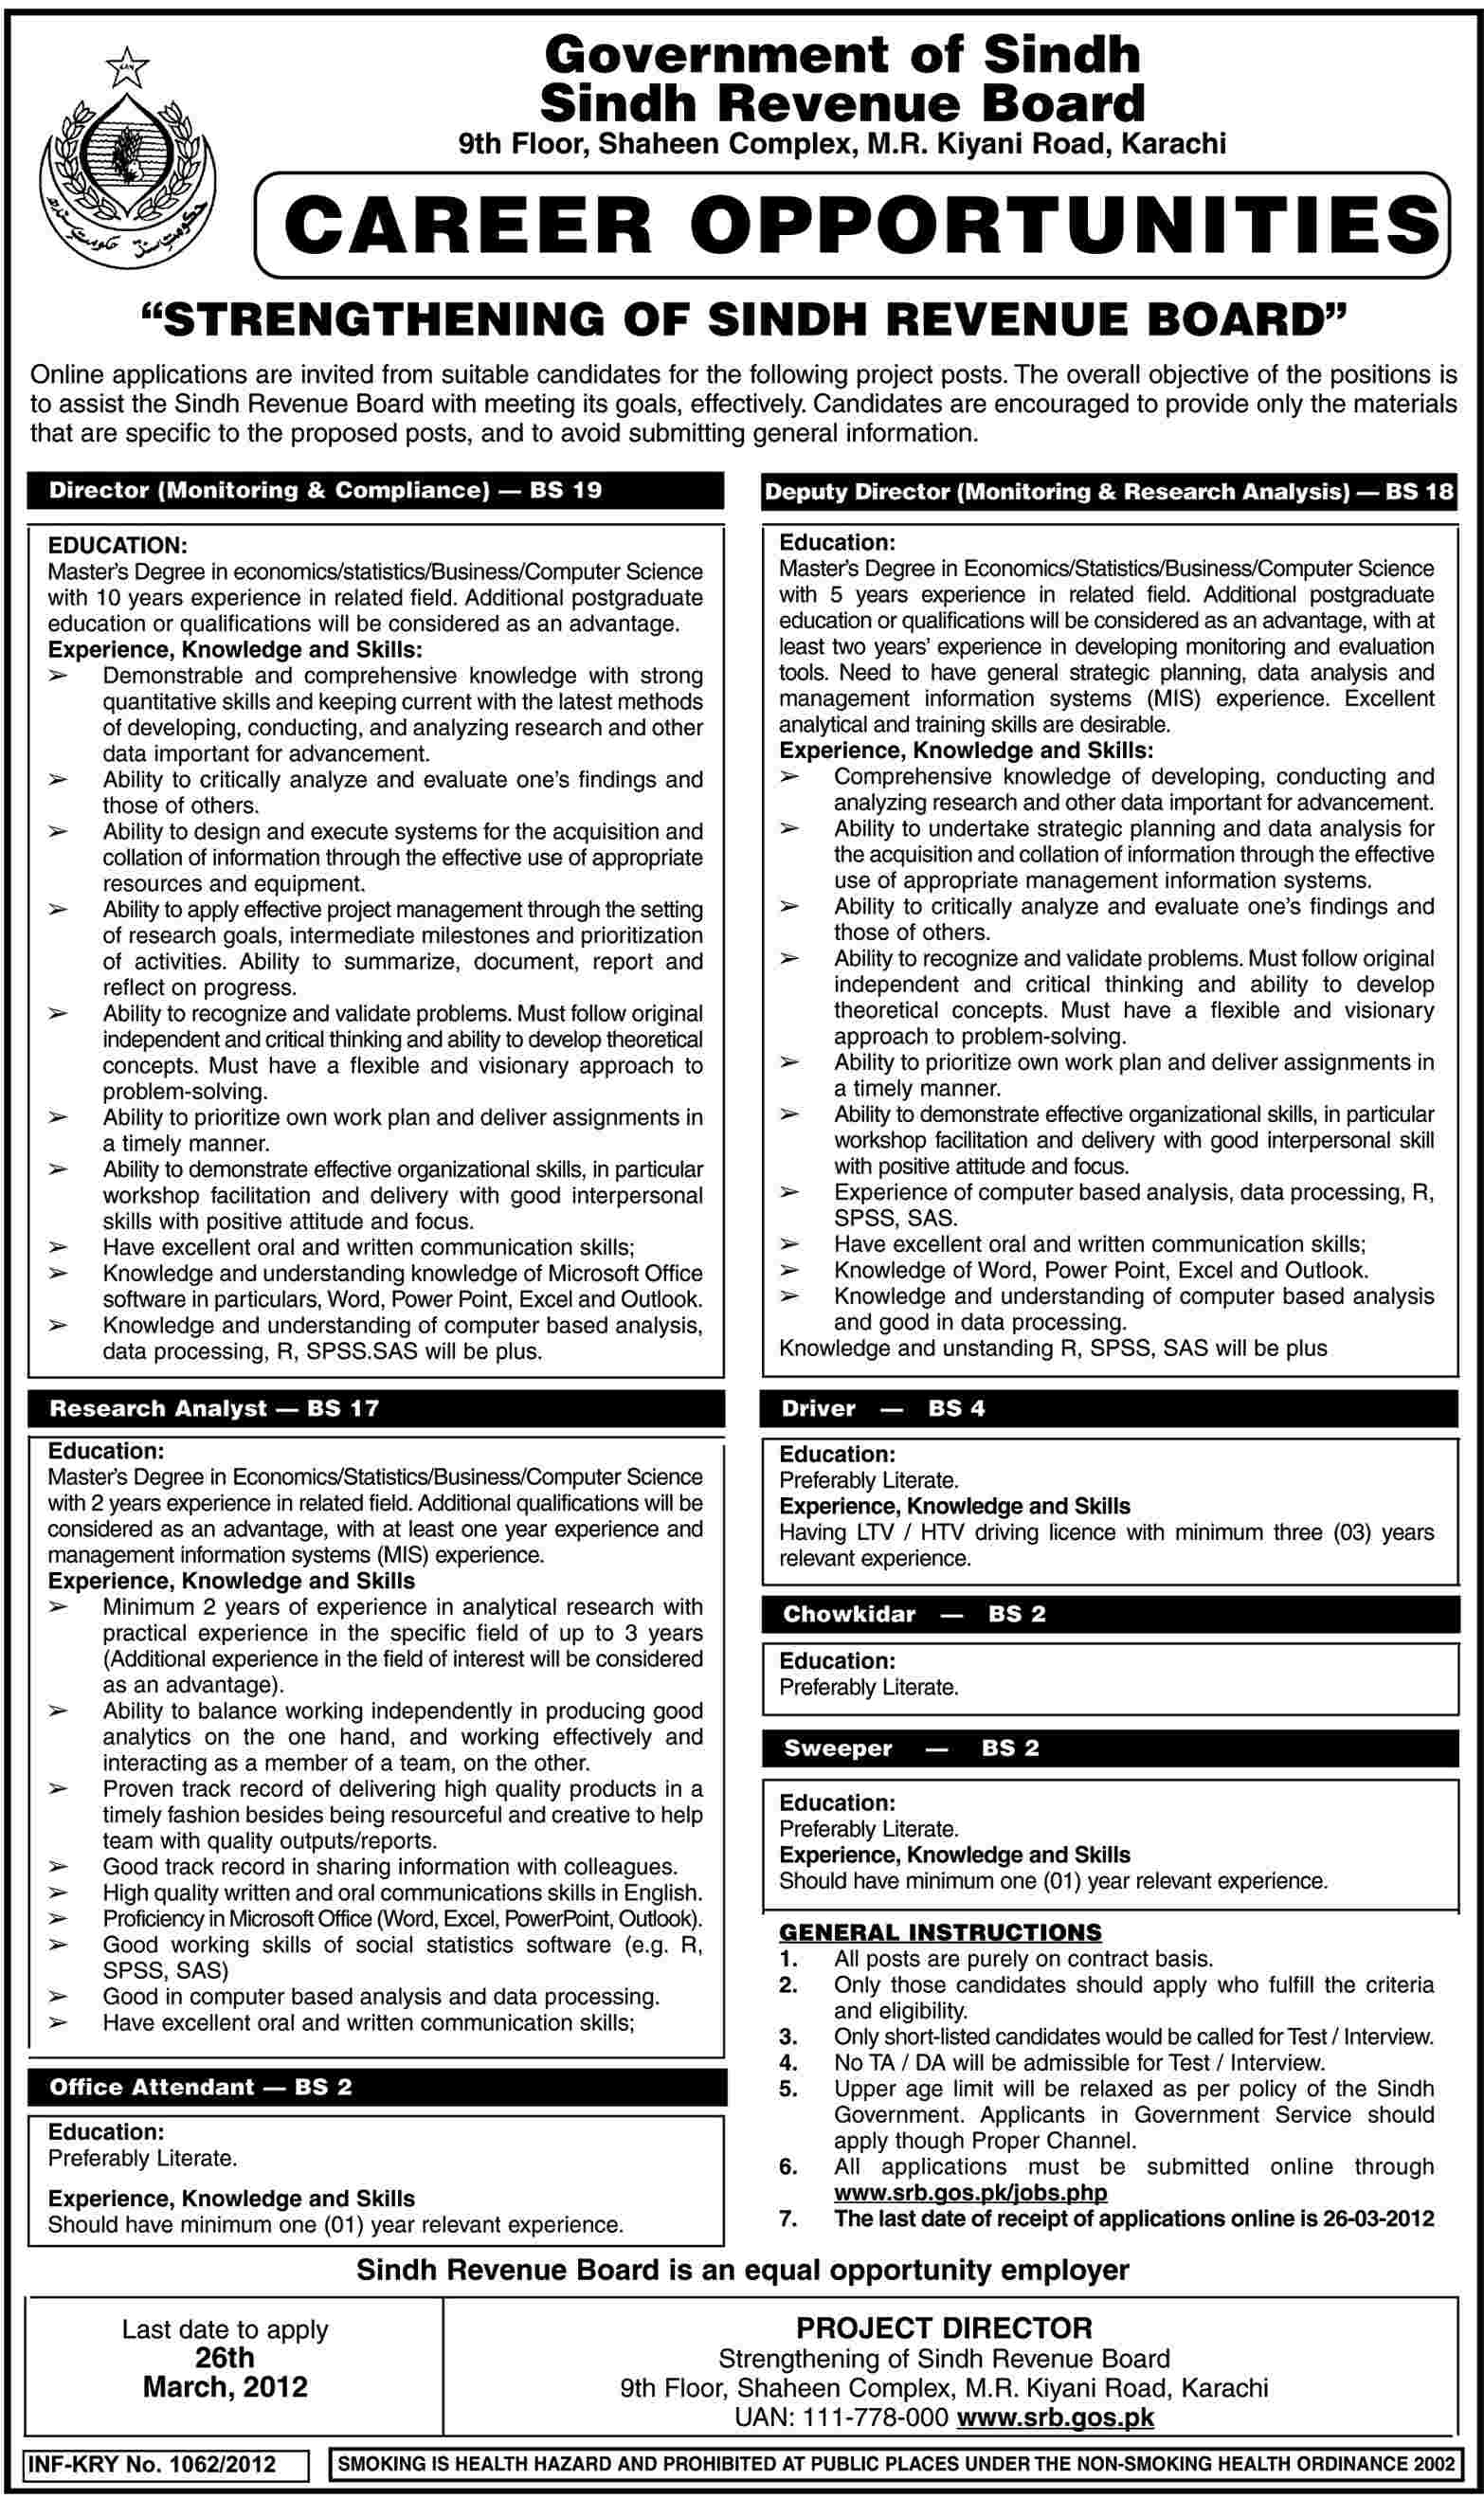 Sindh Revenue Board, Government of Sindh Jobs